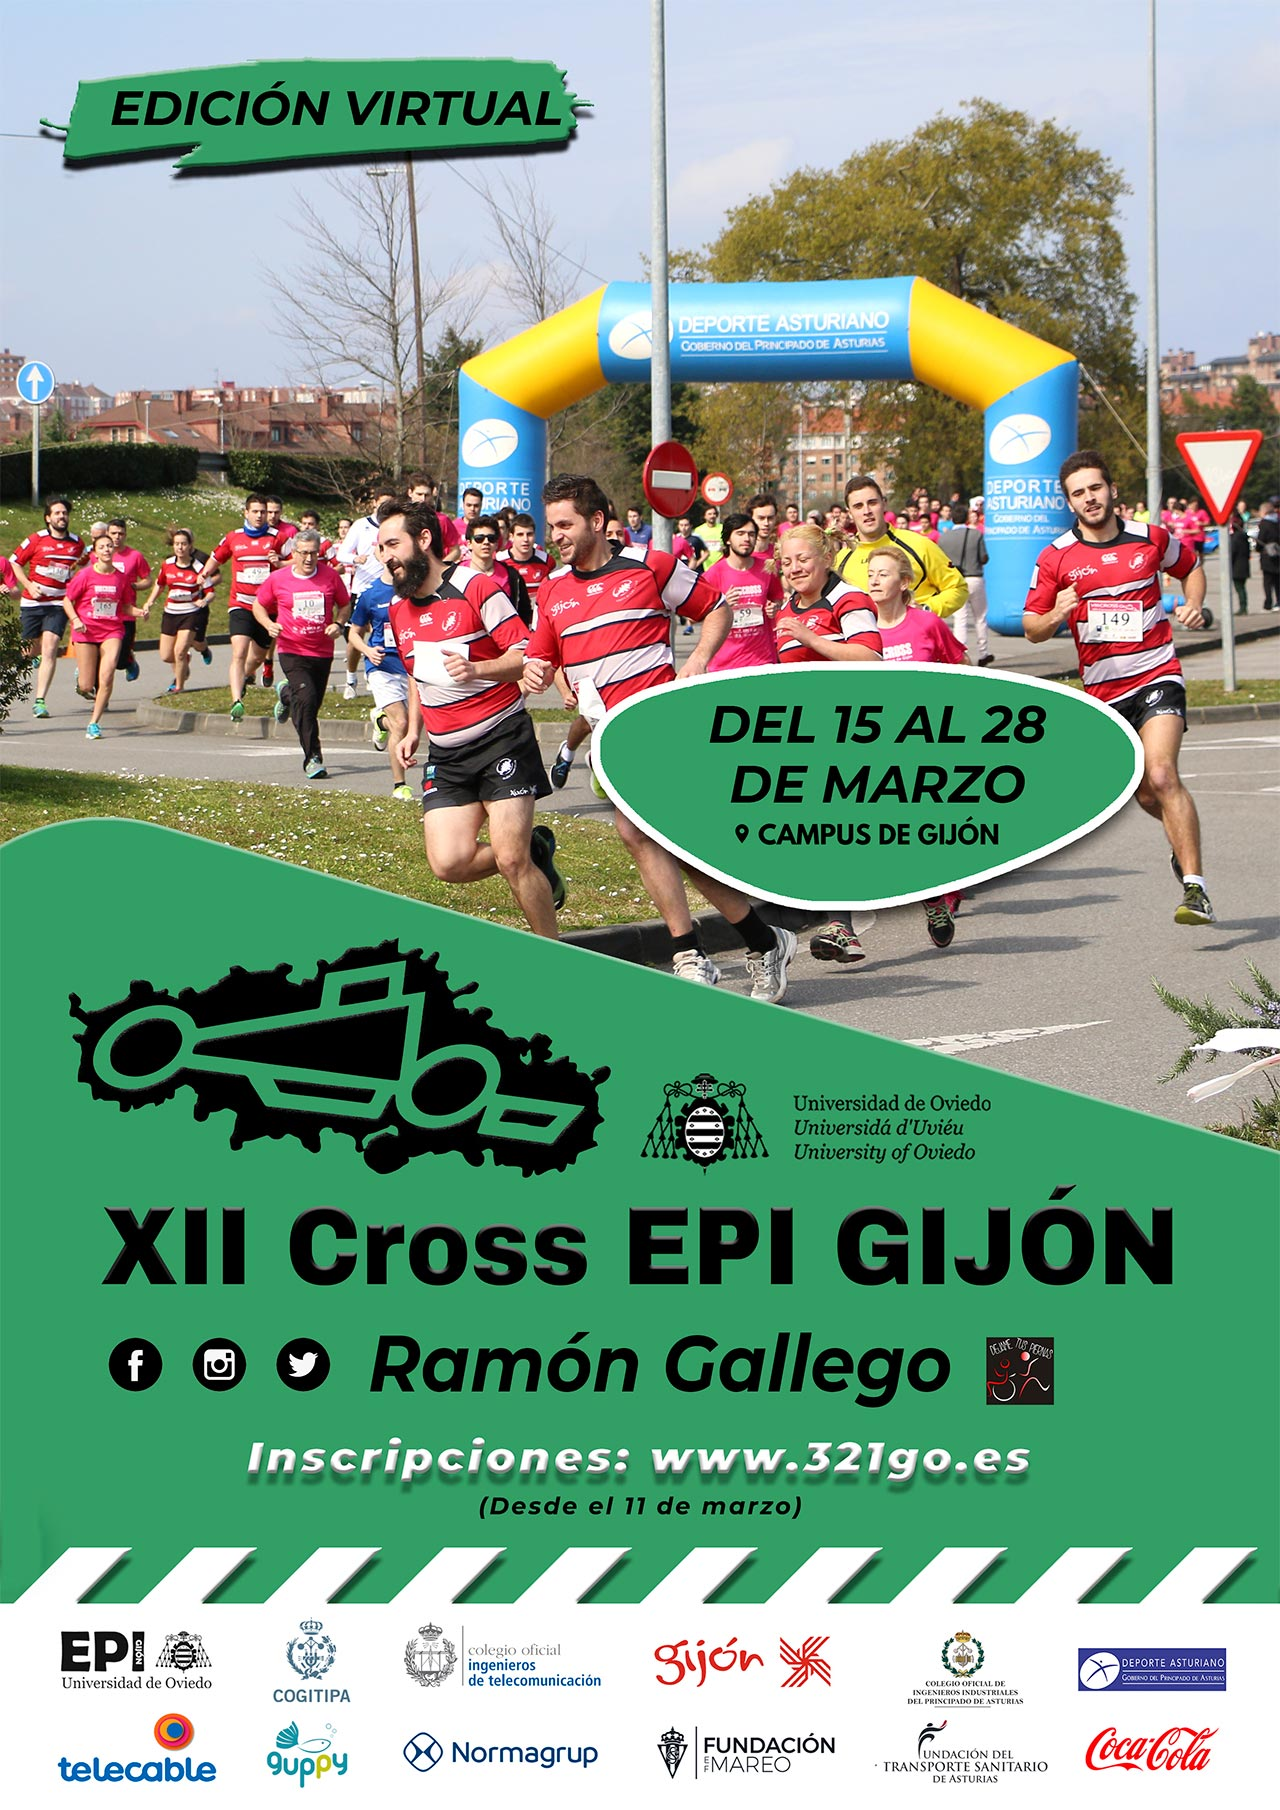 CROSS VIRTUAL EPI GIJÓN-RAMÓN GALLEGO 2021